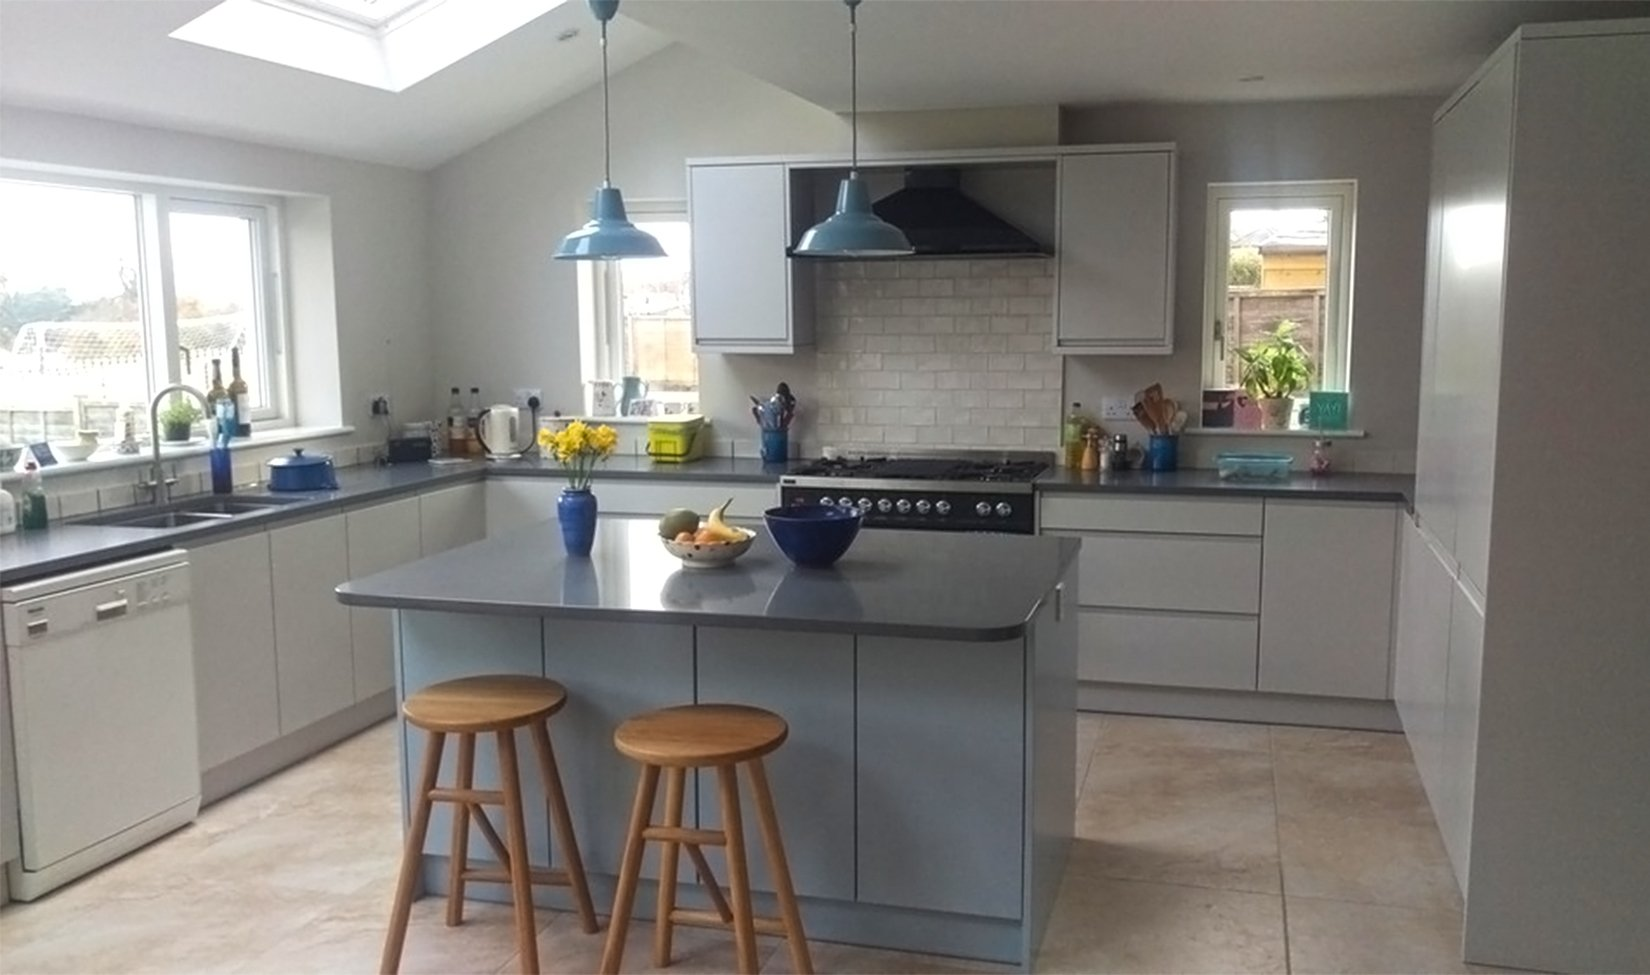 Tollgate Kitchens Oxfordshire Fitted Kitchen Design Supply And Fitting